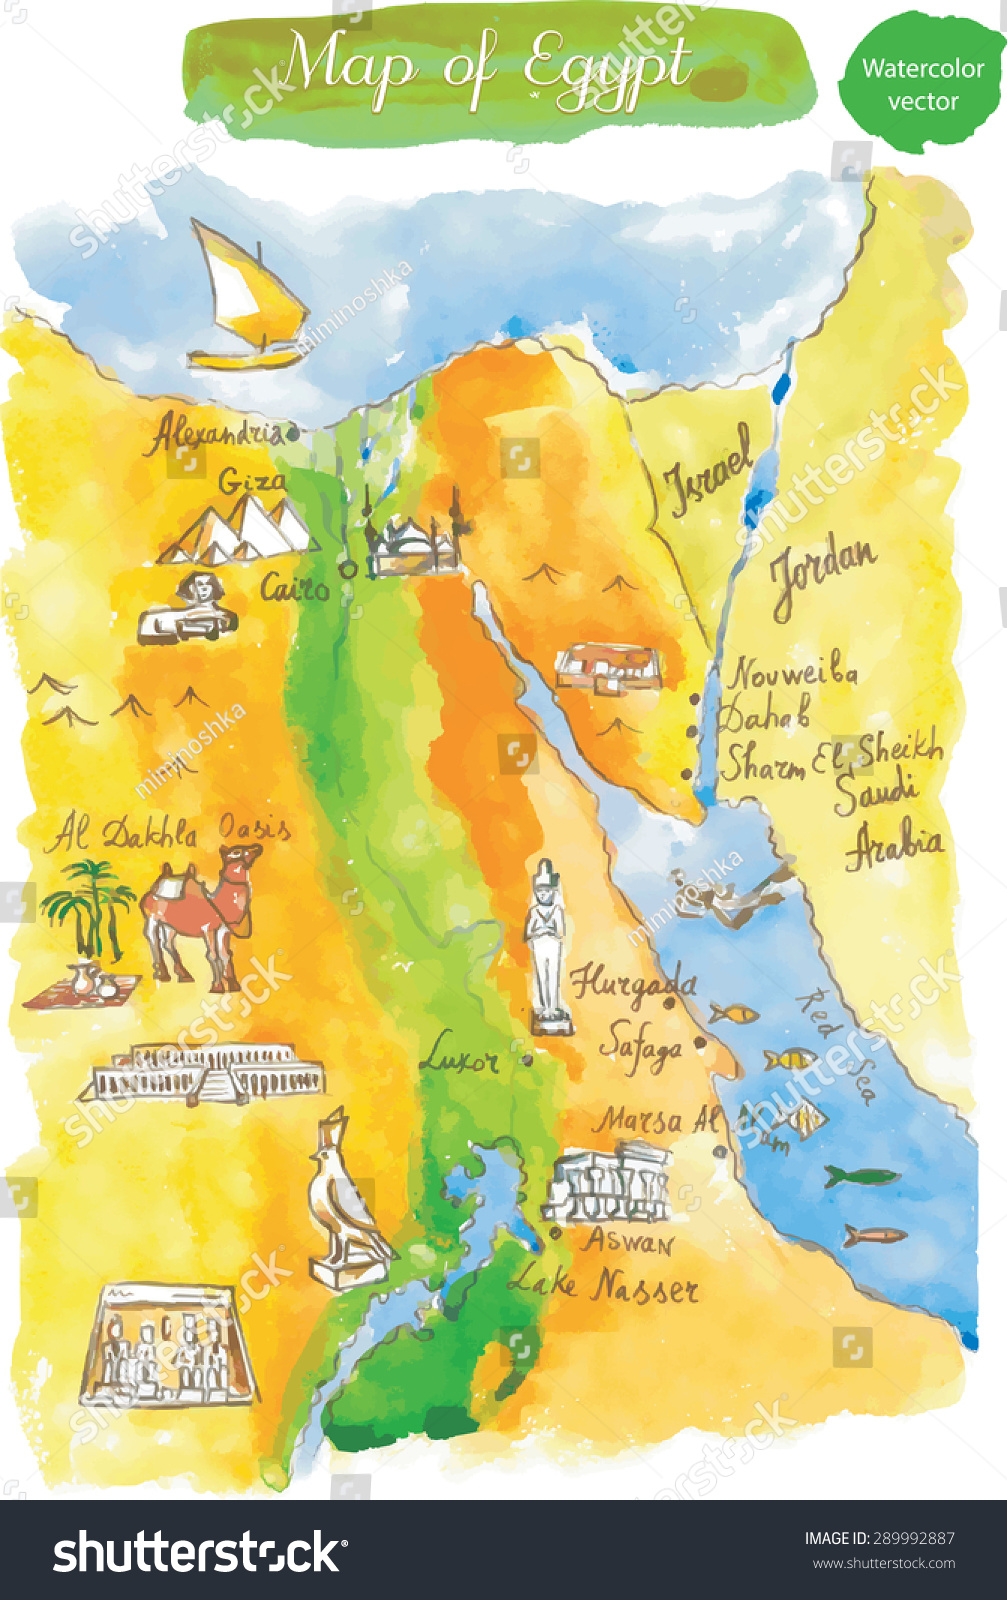 Map Attractions Egypt Watercolor Hand Drawn Stock Vector - Map of egypt landmarks